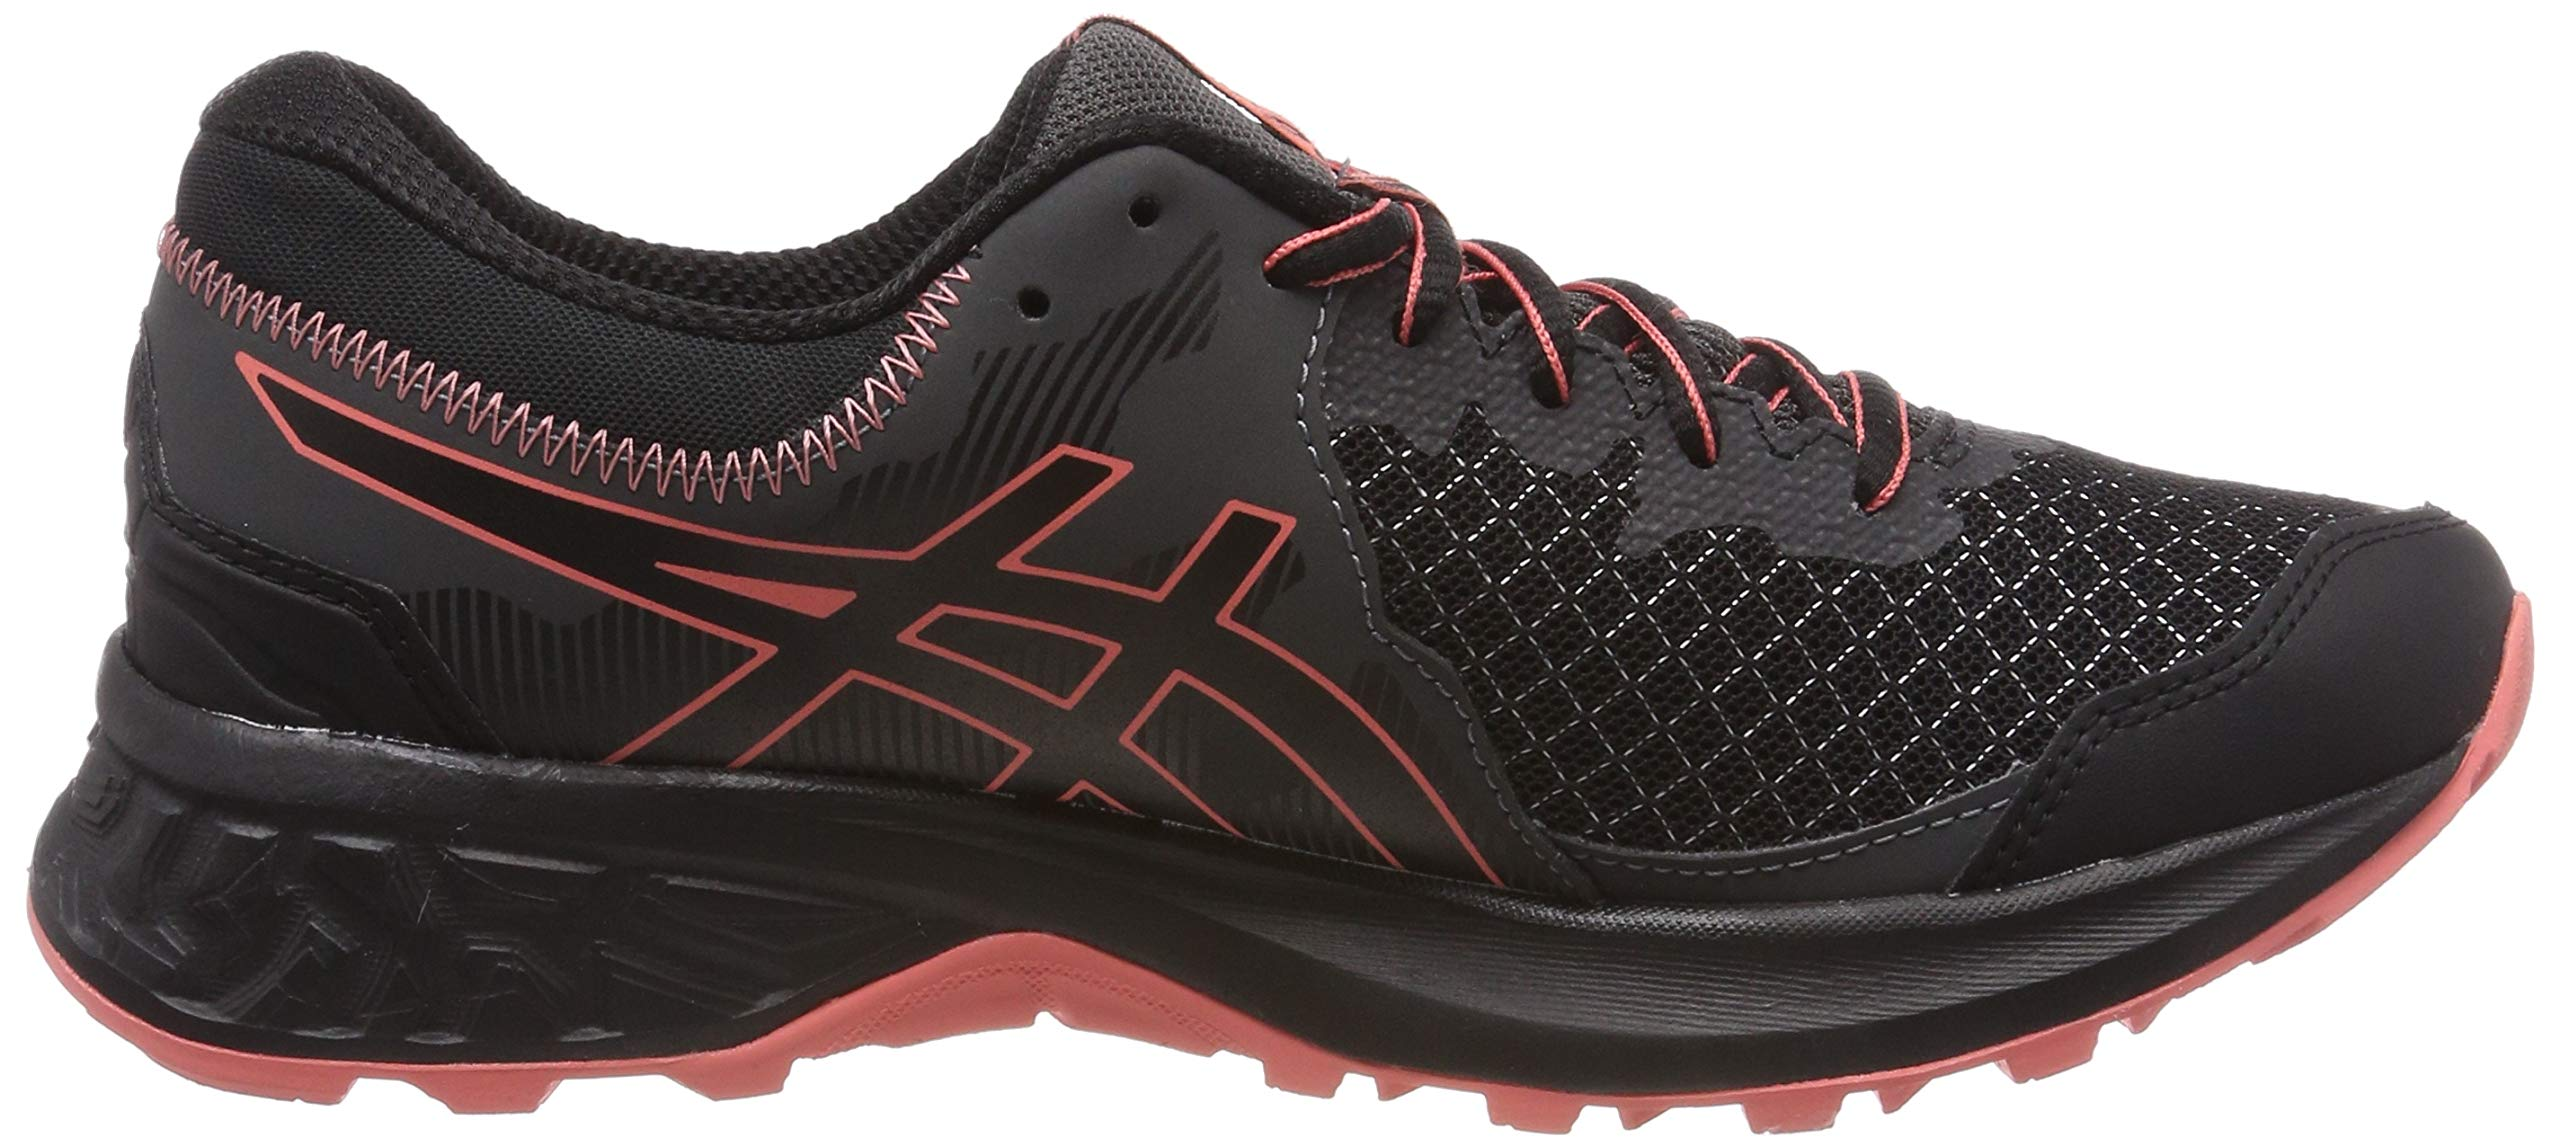 71%2BJ8S4UdGL - ASICS Women's Gel-Sonoma 4 Running Shoes,